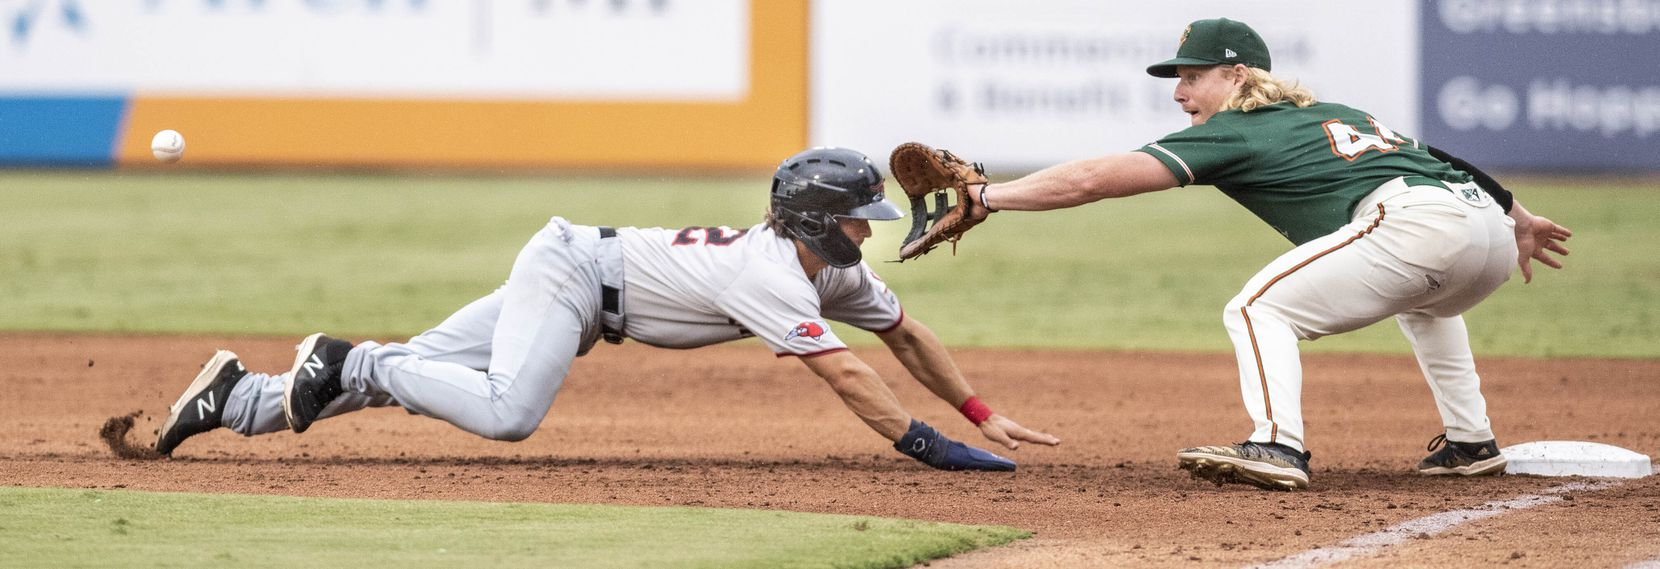 Hickory Crawdad's Josh H. Smith (12)gets back to first base during the game with the Greensboro Grasshopper's at First National Bank Field on Friday, August 6, 2021 in Greensboro, N.C. (Woody Marshall/Special Contributor)